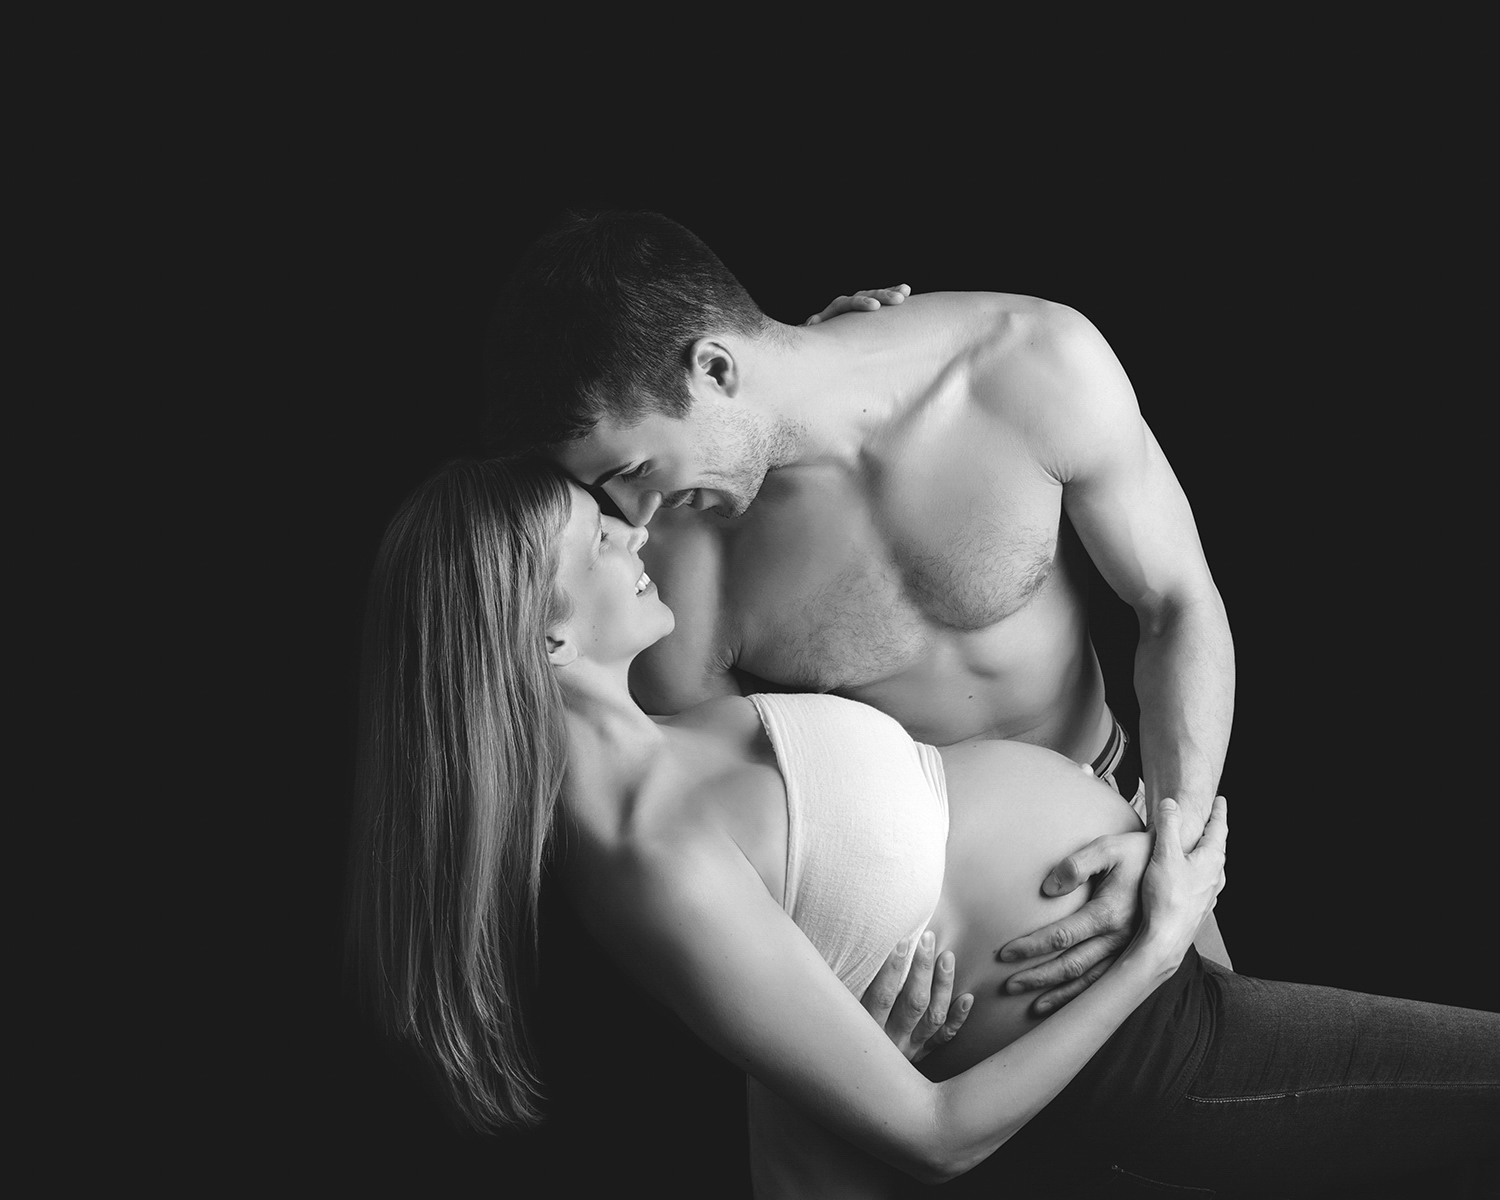 A fun black and white photograph of a man holding his expectant wife. Artistic pregnancy photography in a London studio.